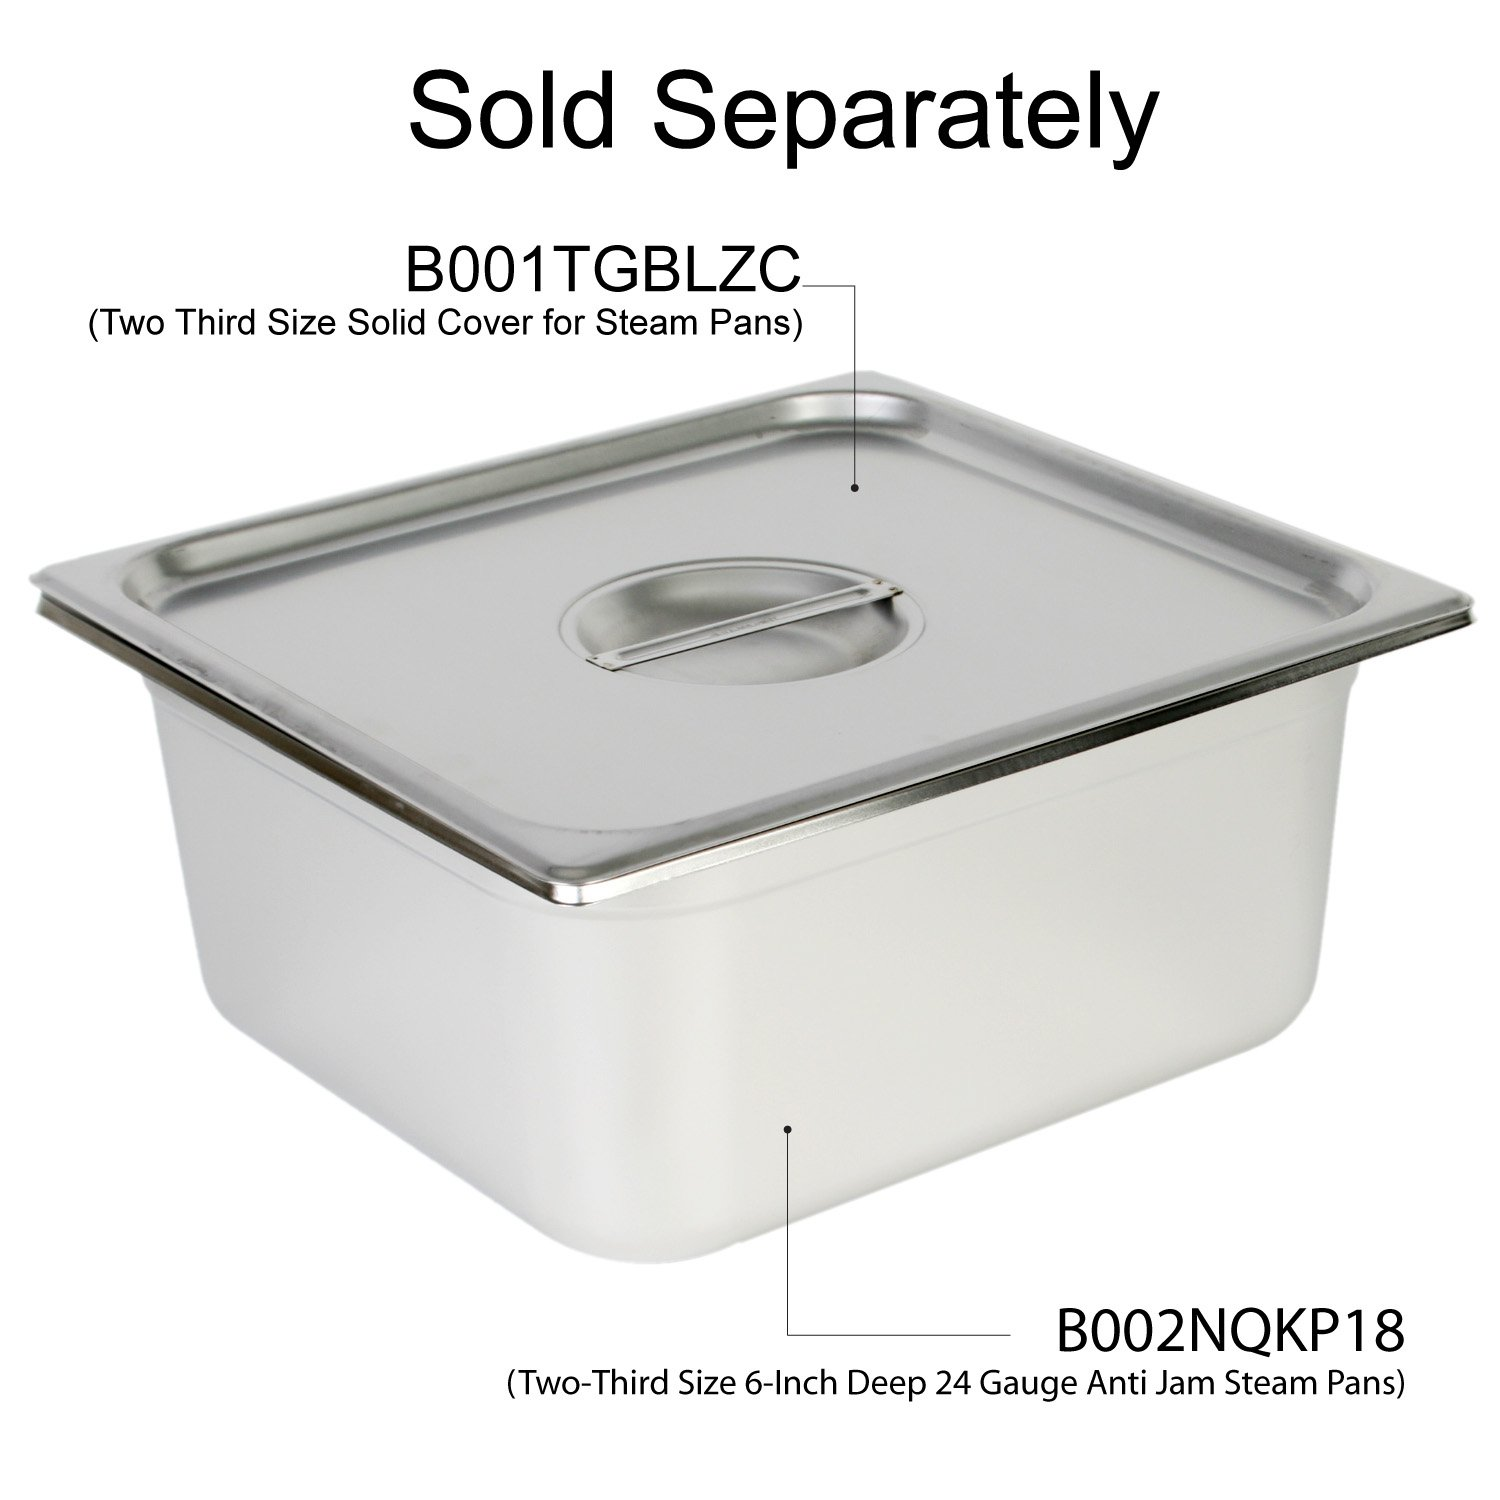 Excellante Two-Third Size 6-Inch Deep 24 Gauge Anti Jam Steam Pans by Excellant (Image #2)